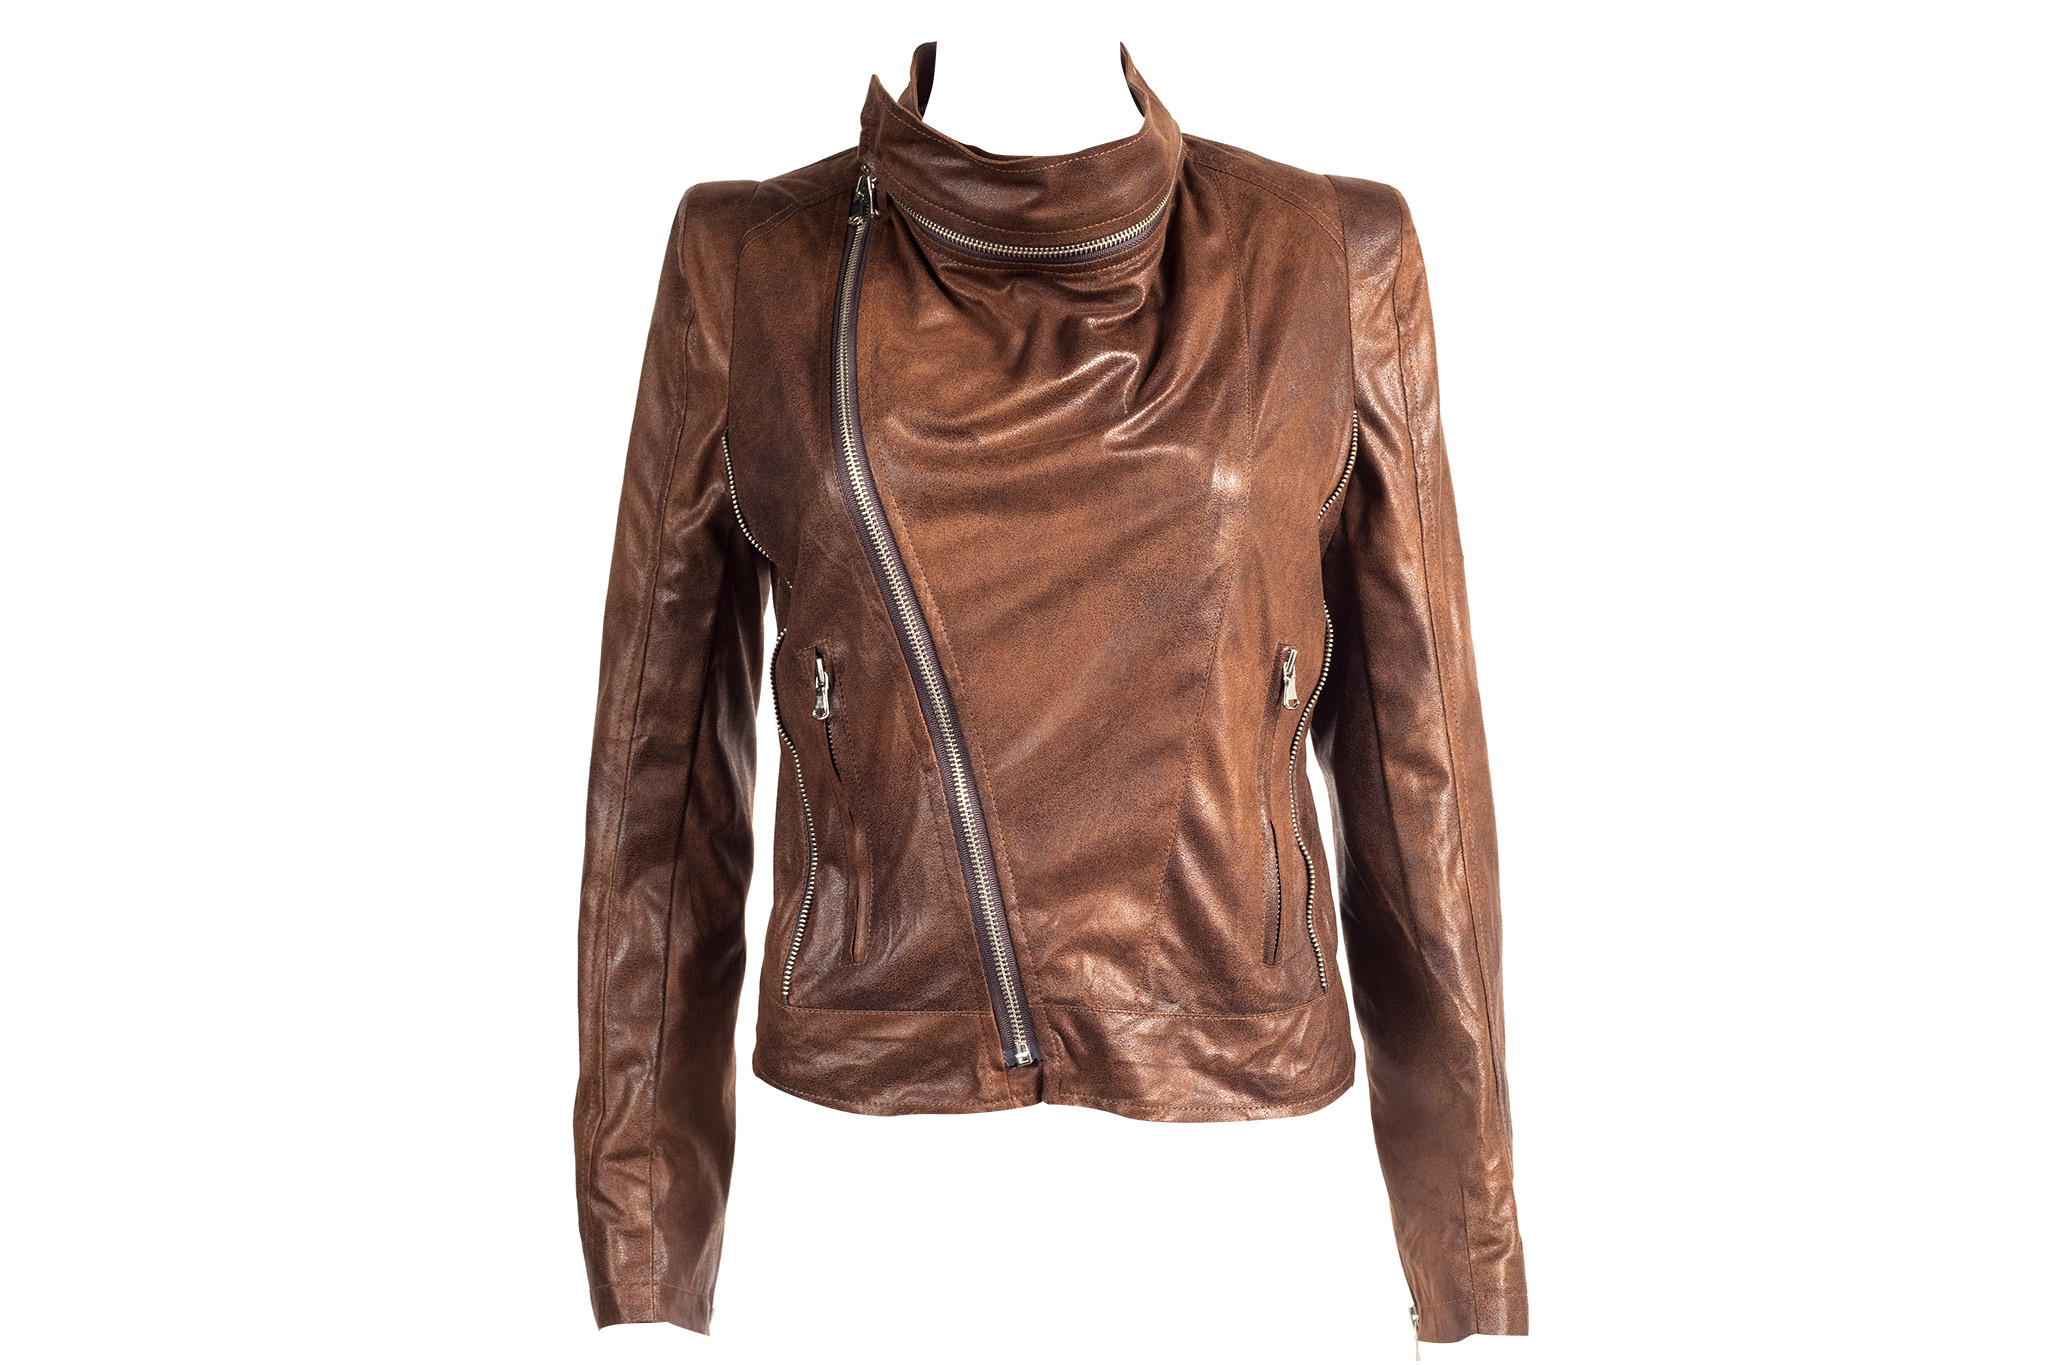 Pinkyotto zip-collar leather jacket, $268